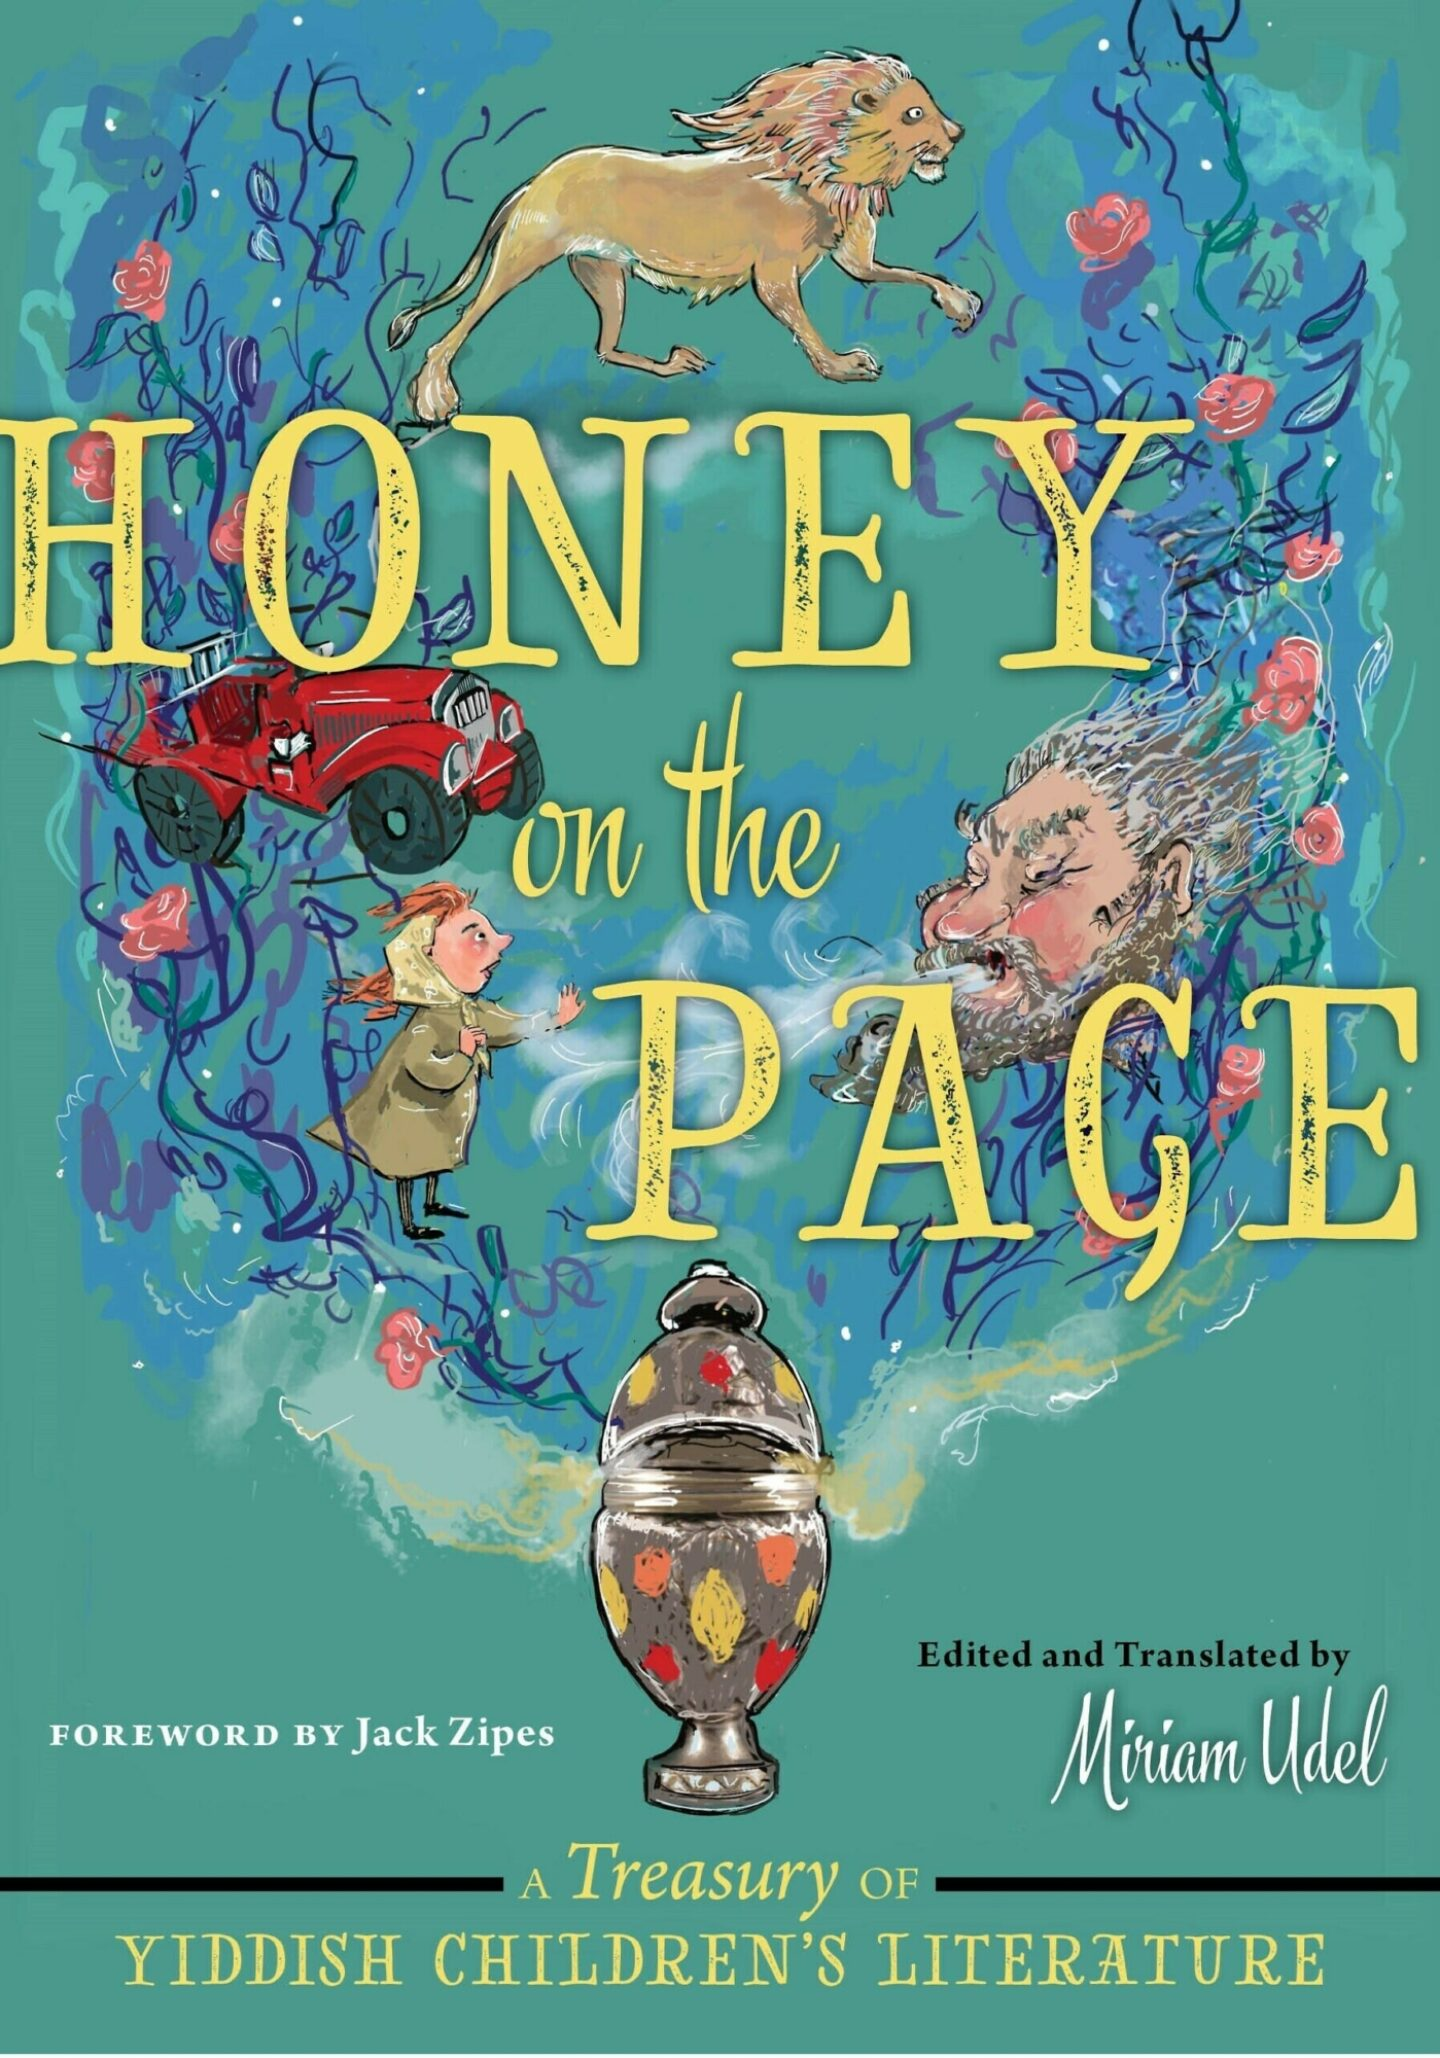 <p>Paula Cohen's illustrated cover for Miriam Udel's <em>Honey on the Page: A&nbsp;Treasure of Yiddish Children's Literature</em>.</p>